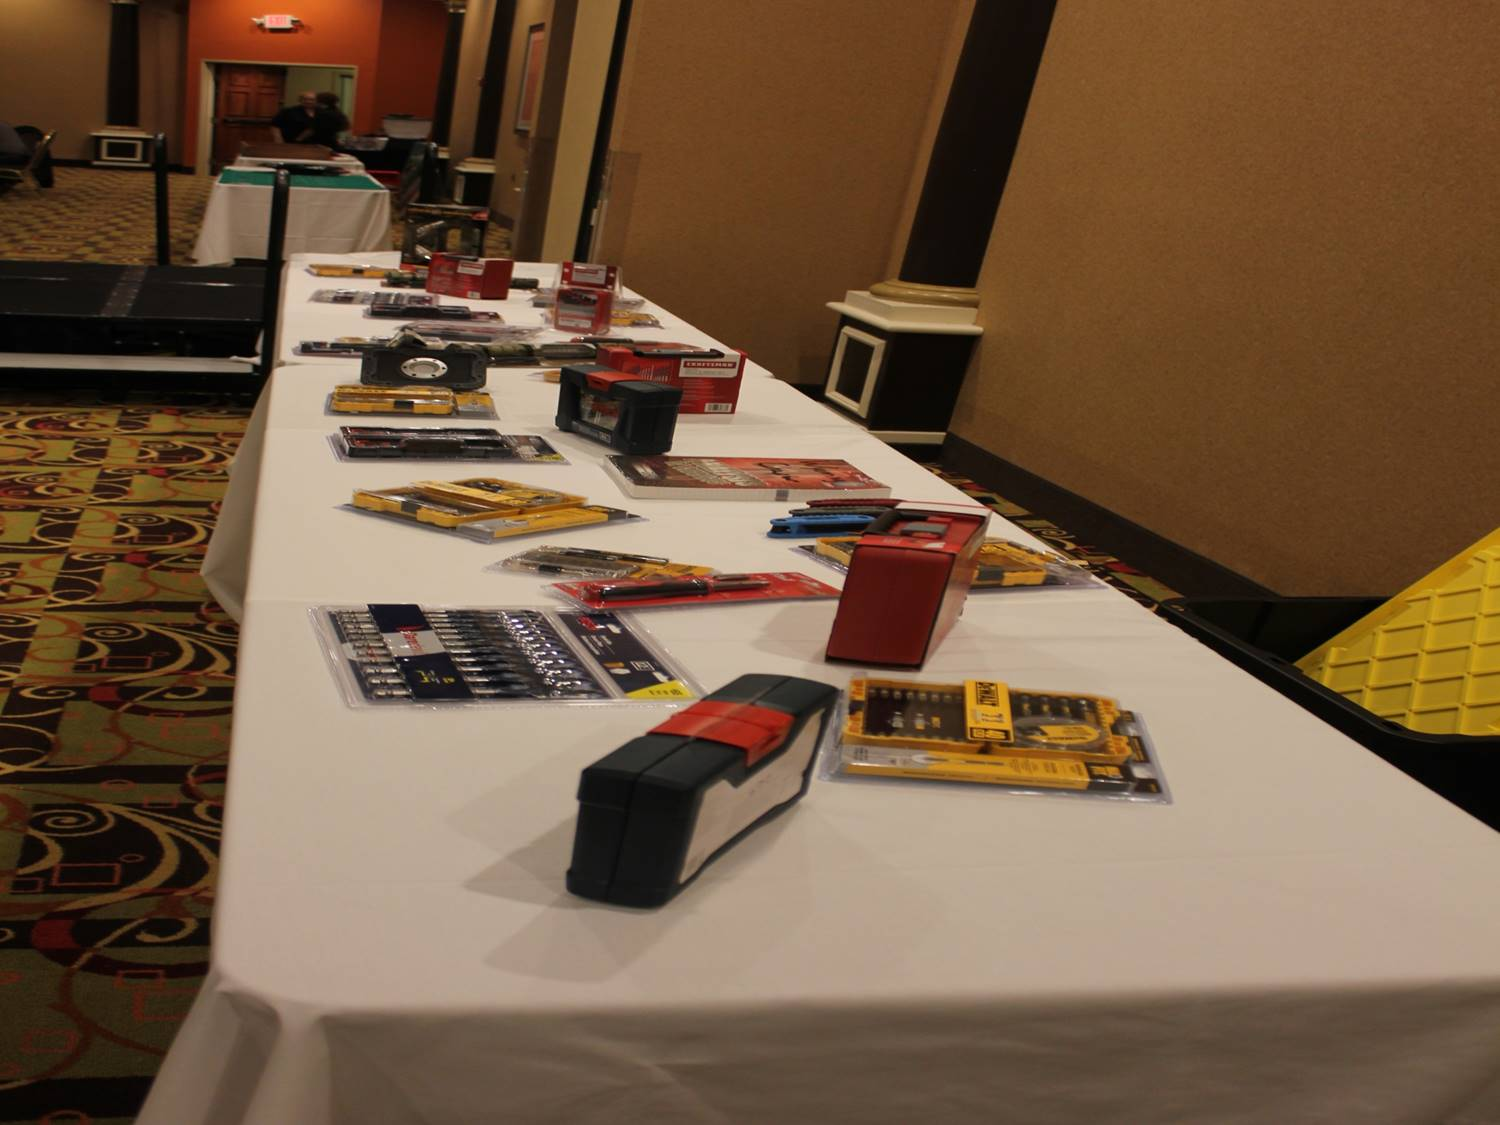 Every year we get really nice door prizes and we want to thank the folks from Echo Electric Supply, Norfolk, Winlectric in Lincoln, Northeast Community College in Norfolk, Husker Electric in Lincoln and to the many vendors at the meeting bring good door prizes to the event. Thank you Very Much!